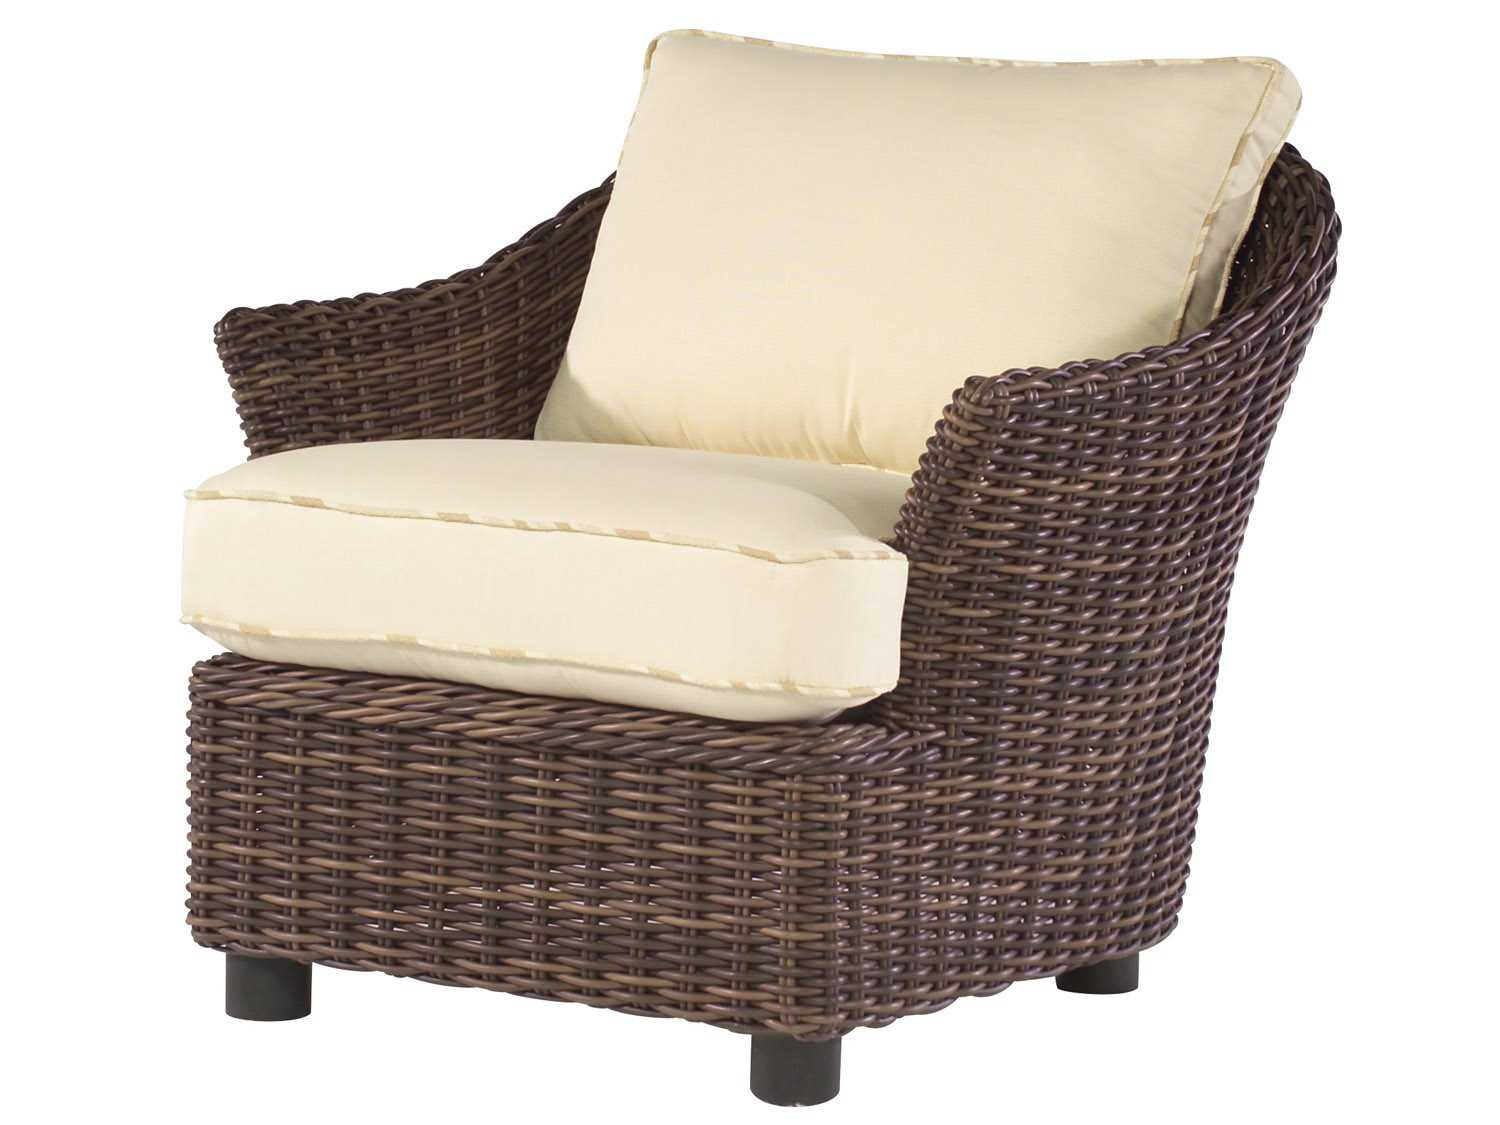 Whitecraft Sonoma Lounge Chair Replacement Cushions